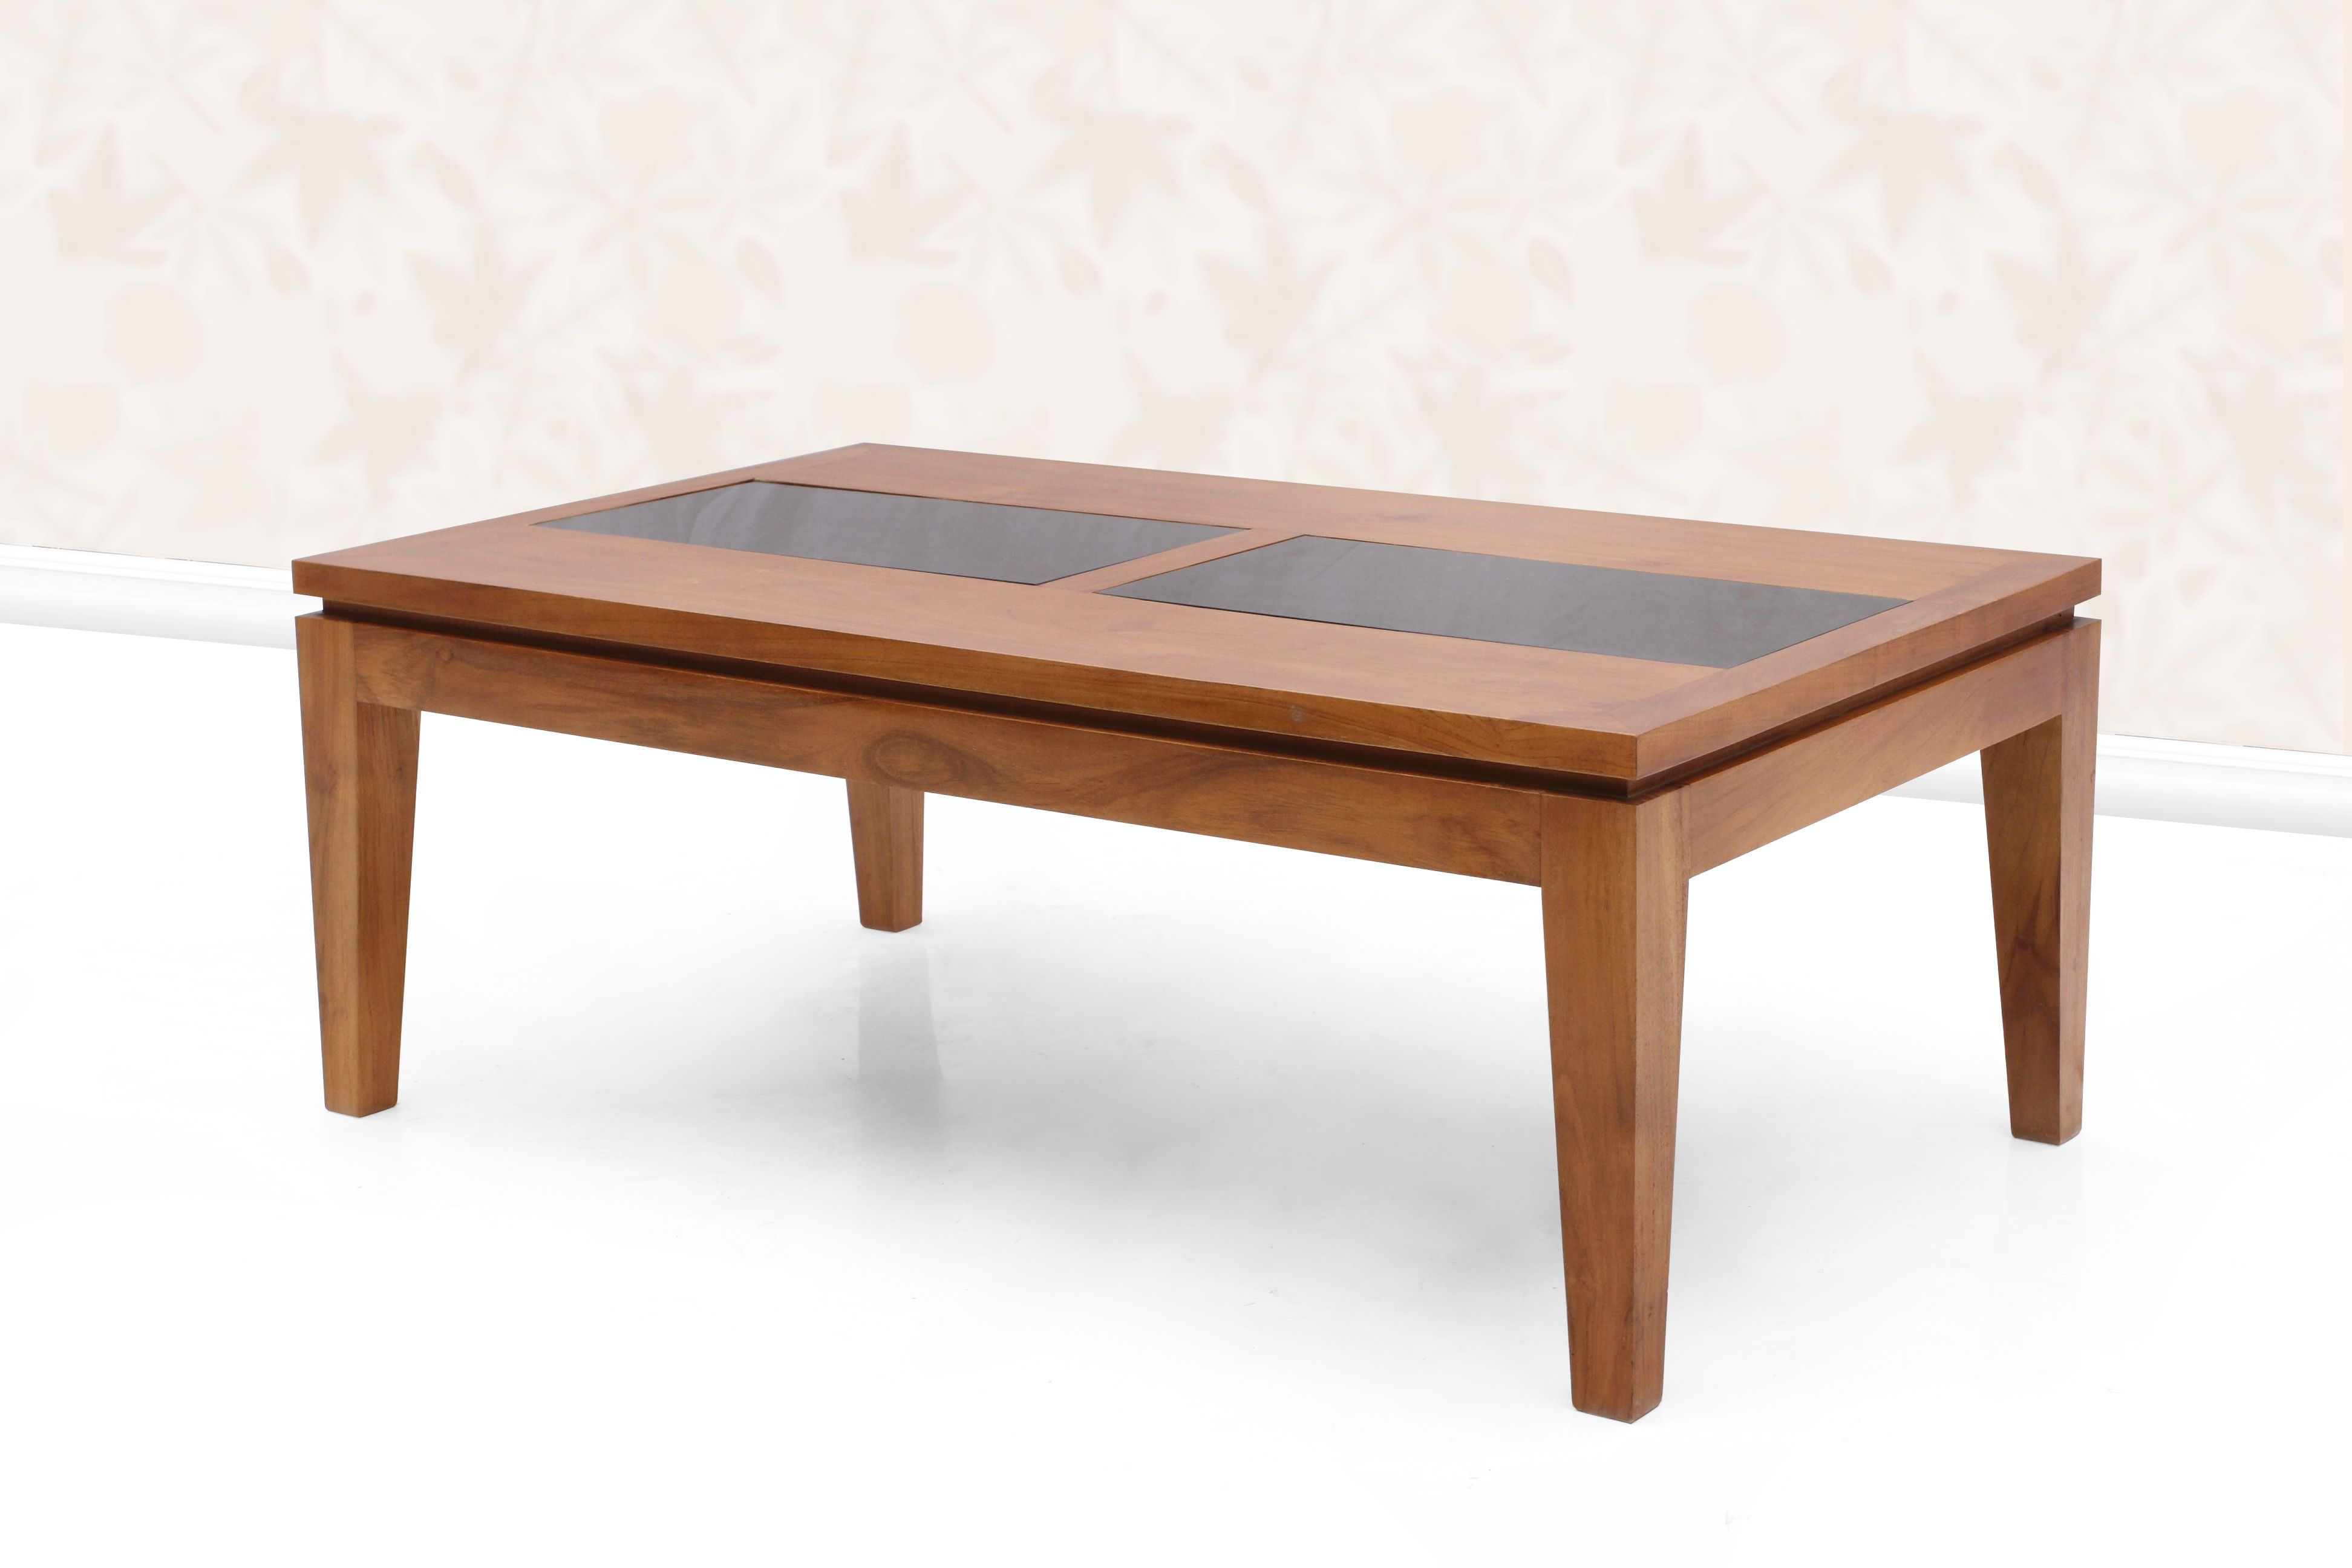 teak wood coffee table malaysia #teakwood #coffeetable #woodentable